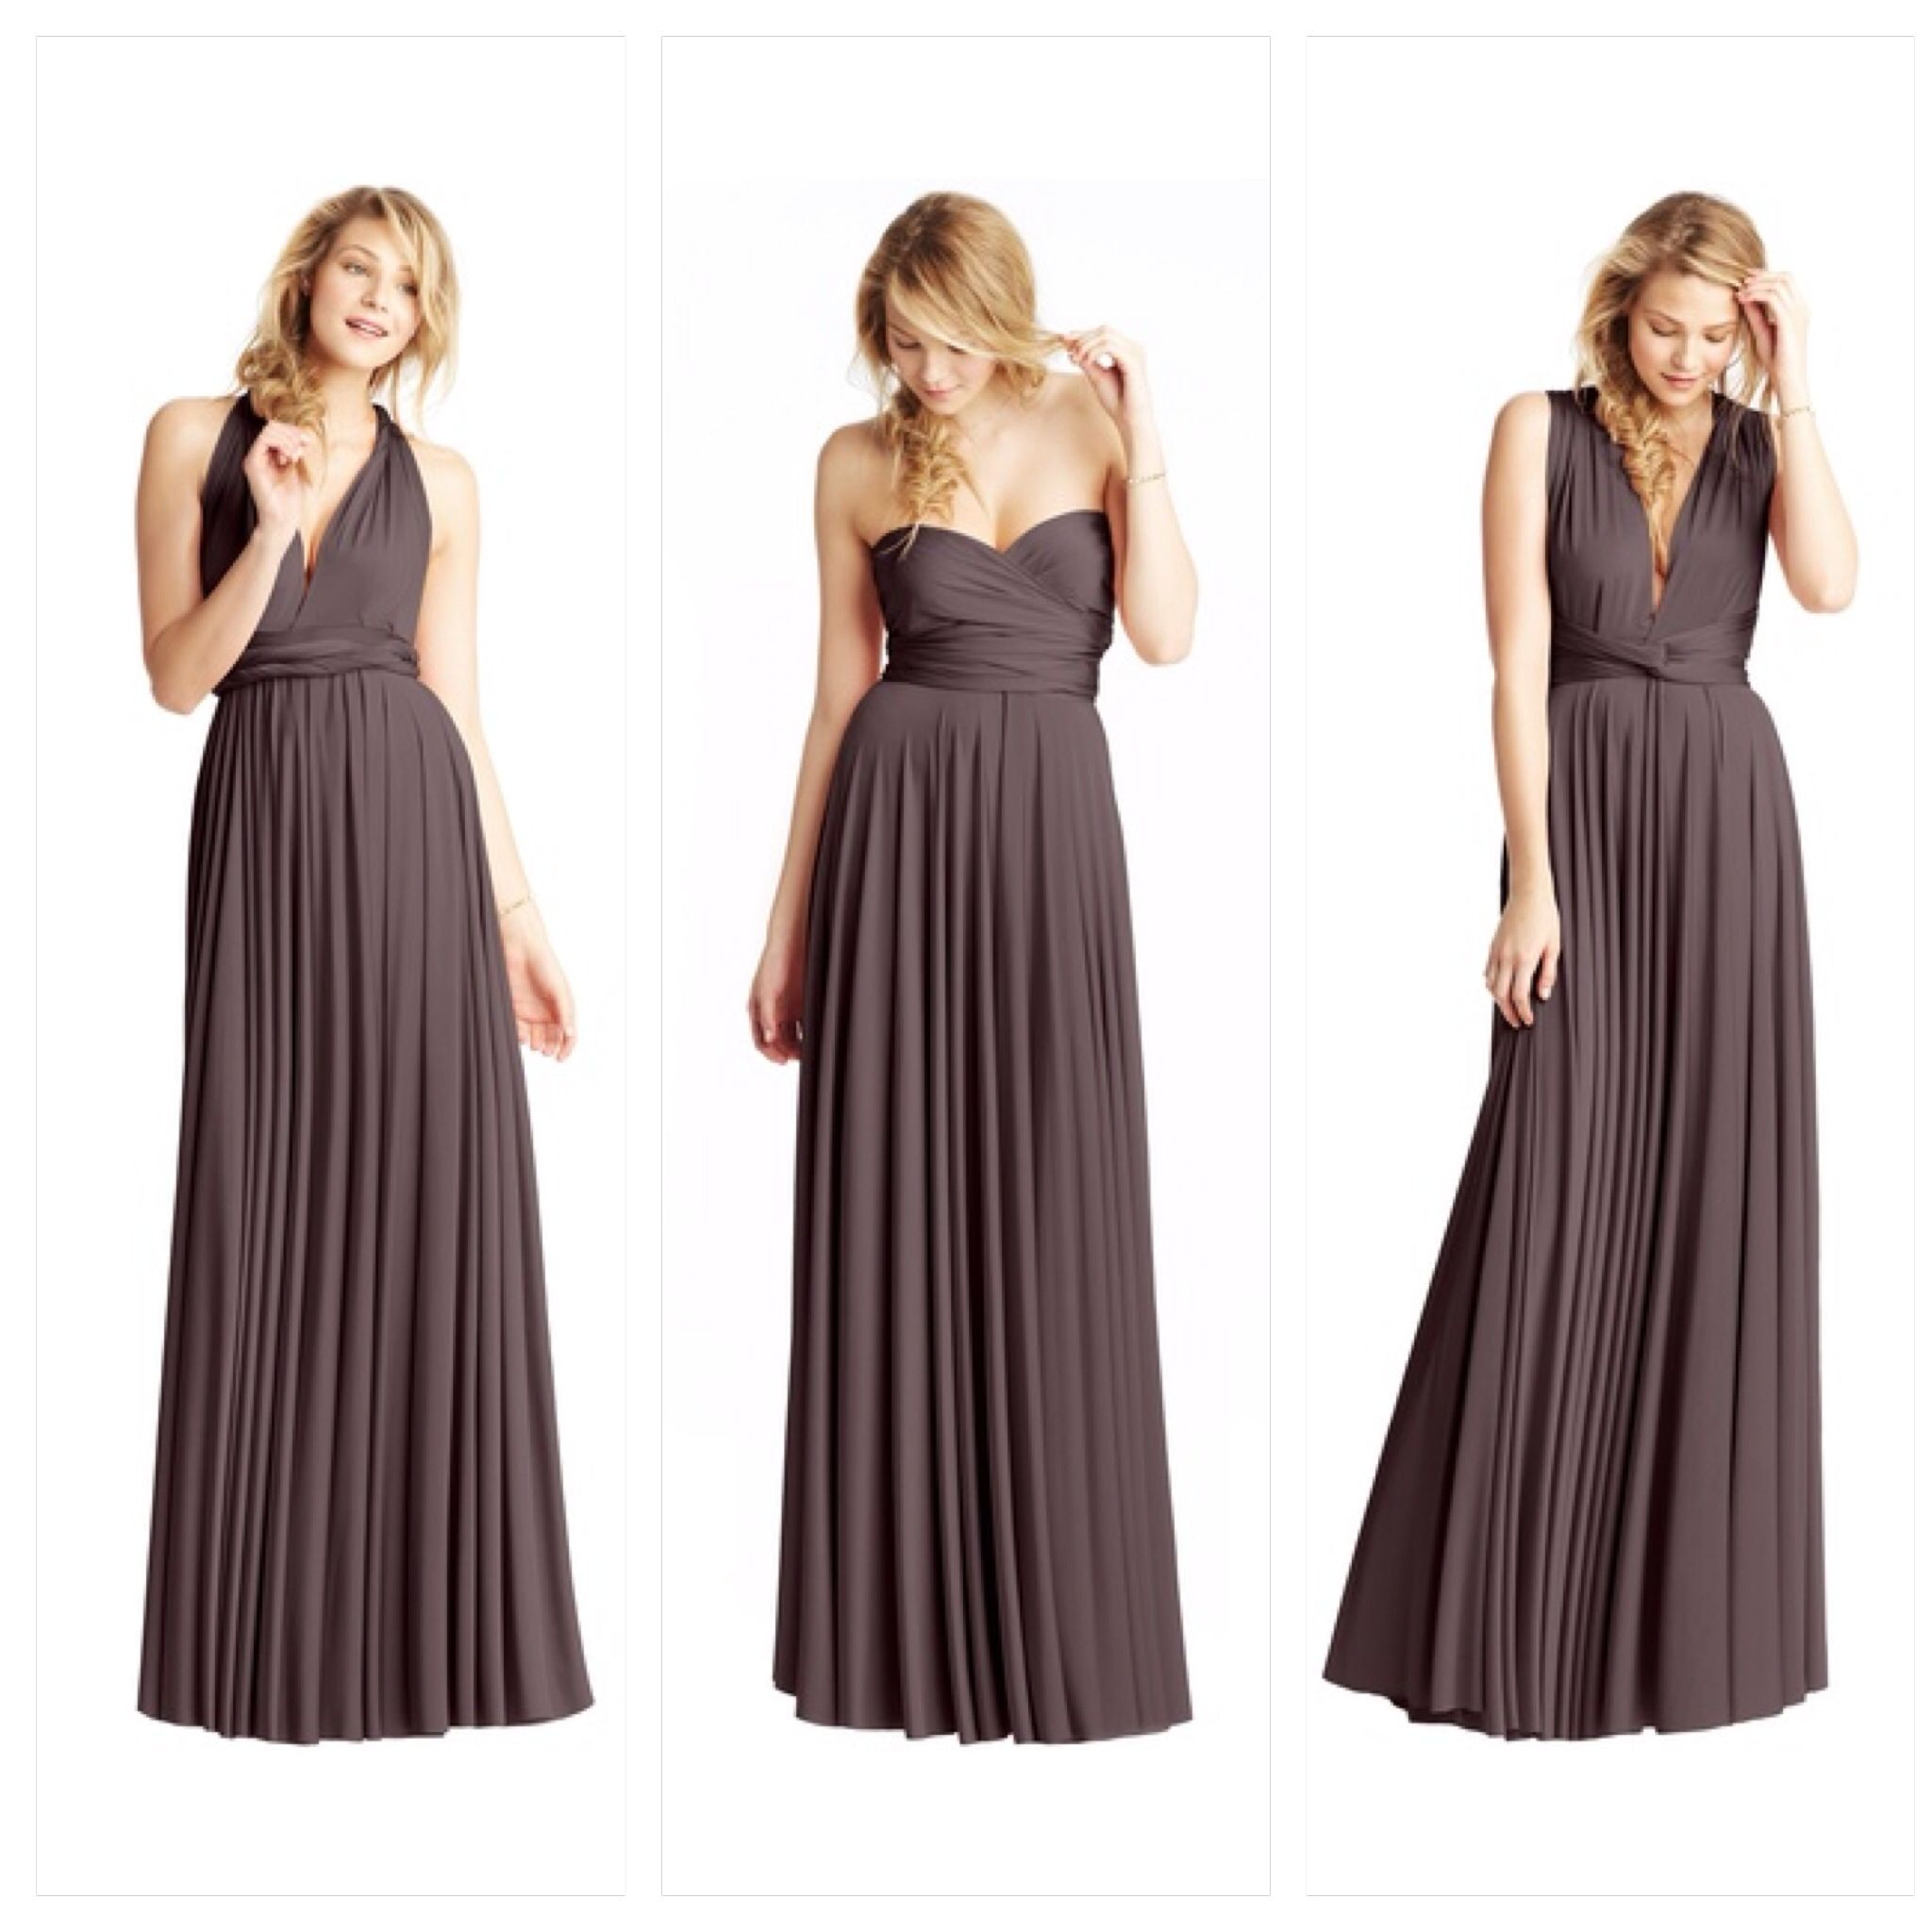 Two birds bridesmaid dresses my girls would look beautiful in these two birds bridesmaid dresses my girls would look beautiful in these ombrellifo Image collections